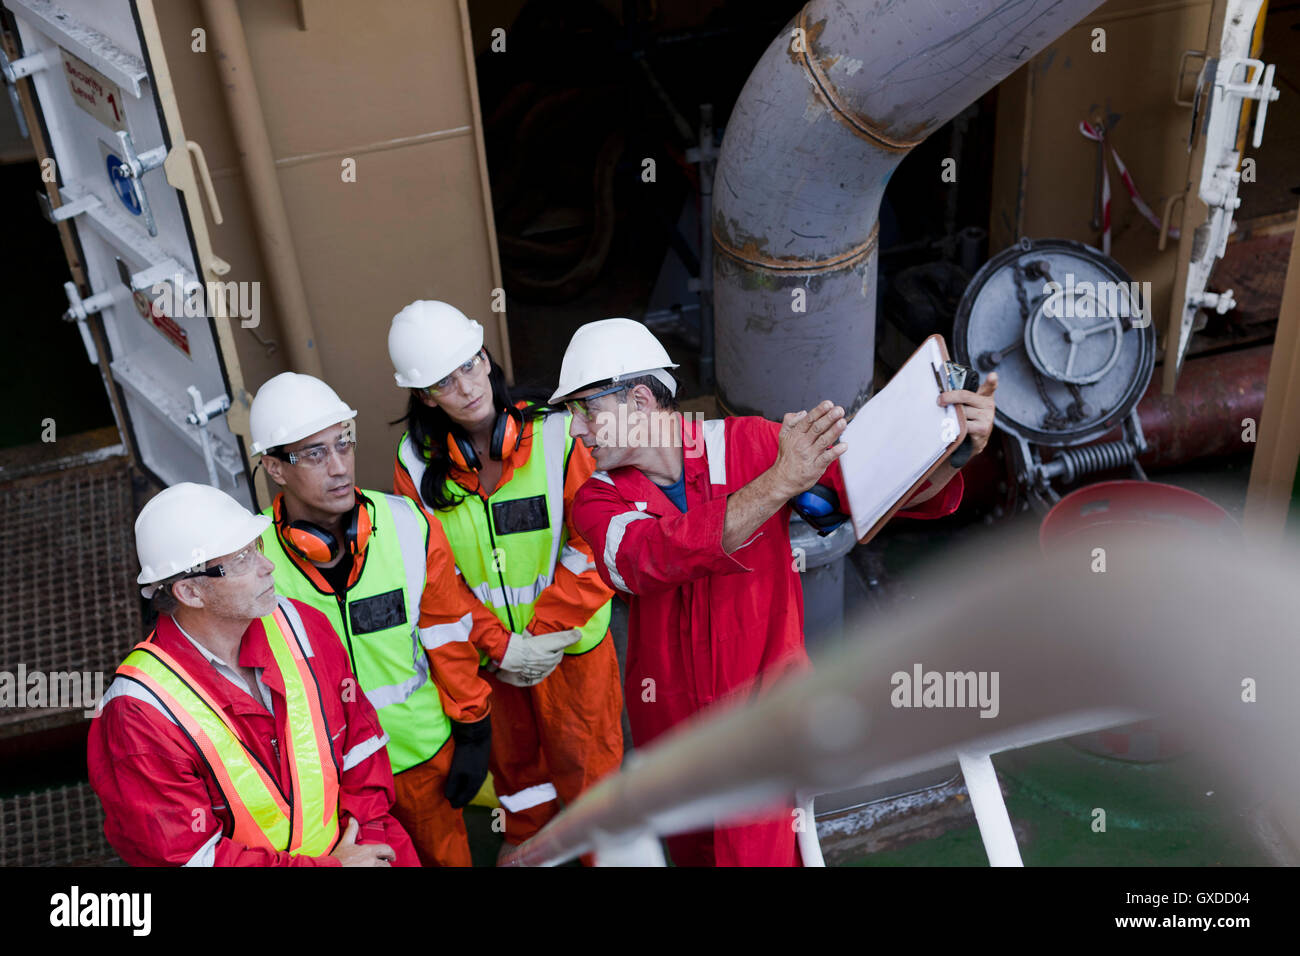 Engineers in brainstorming session on oil rig - Stock Image